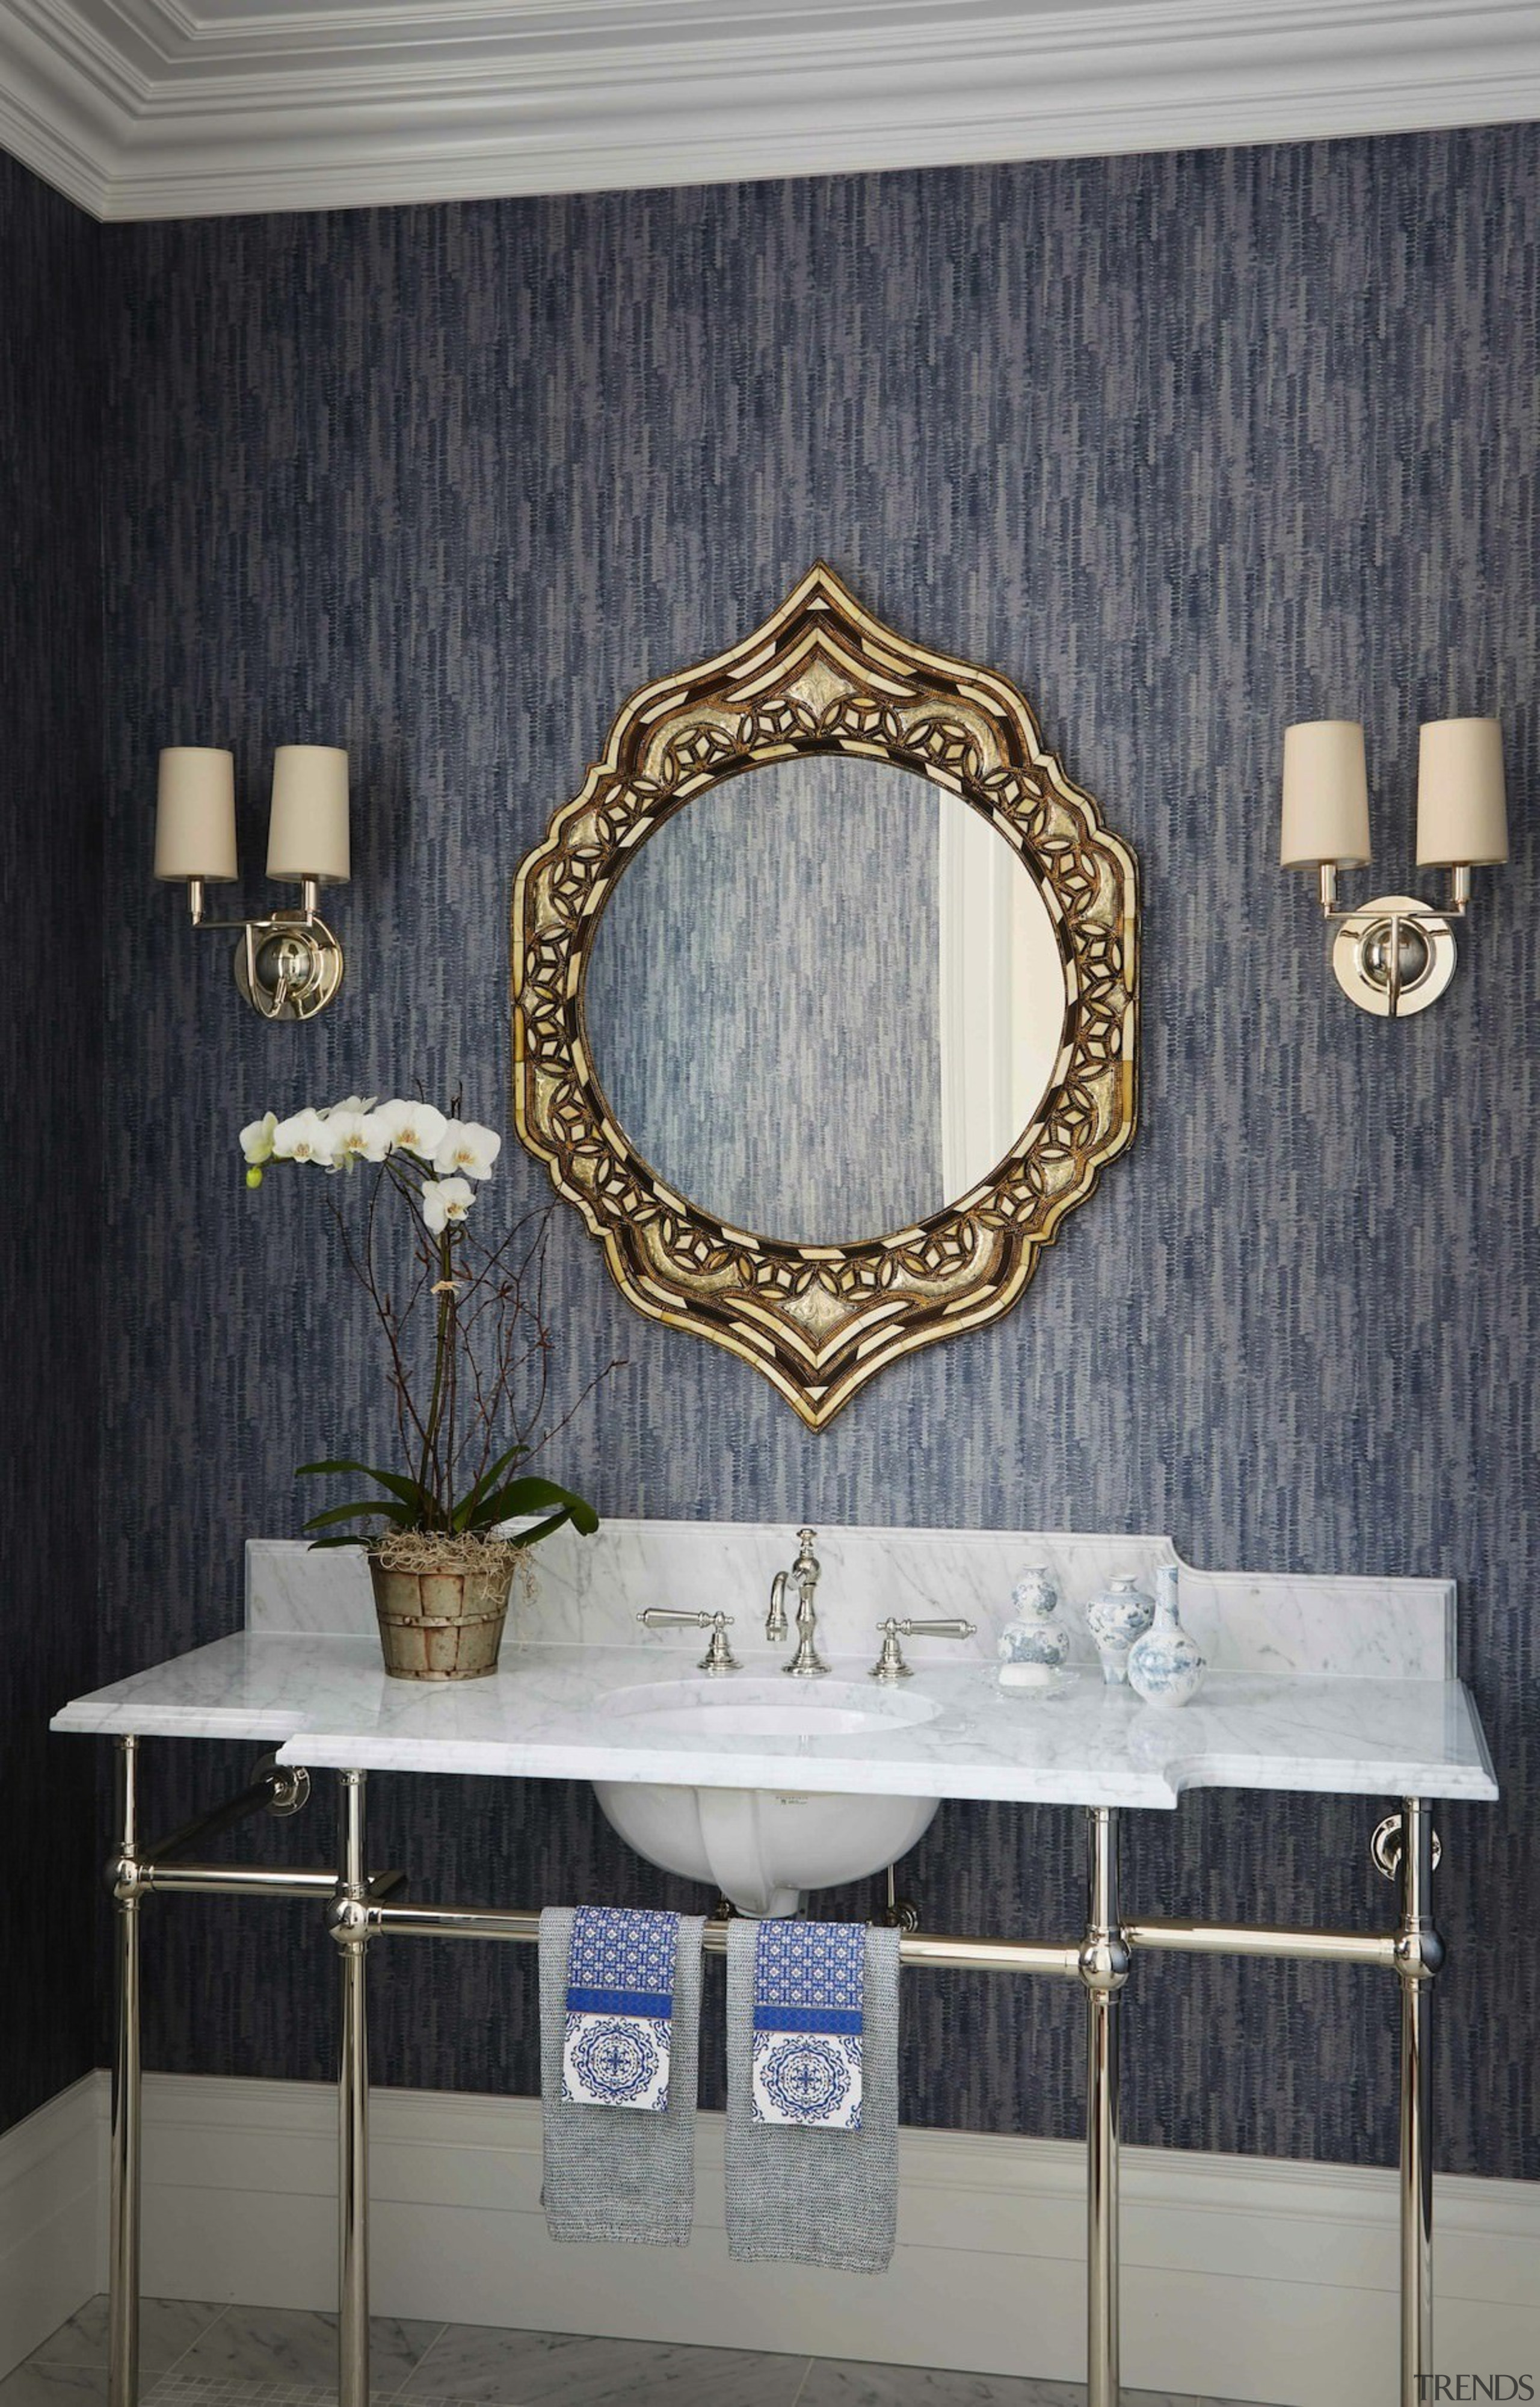 This powder room is luxurious and elegant - bathroom, interior design, room, wall, window, gray, black